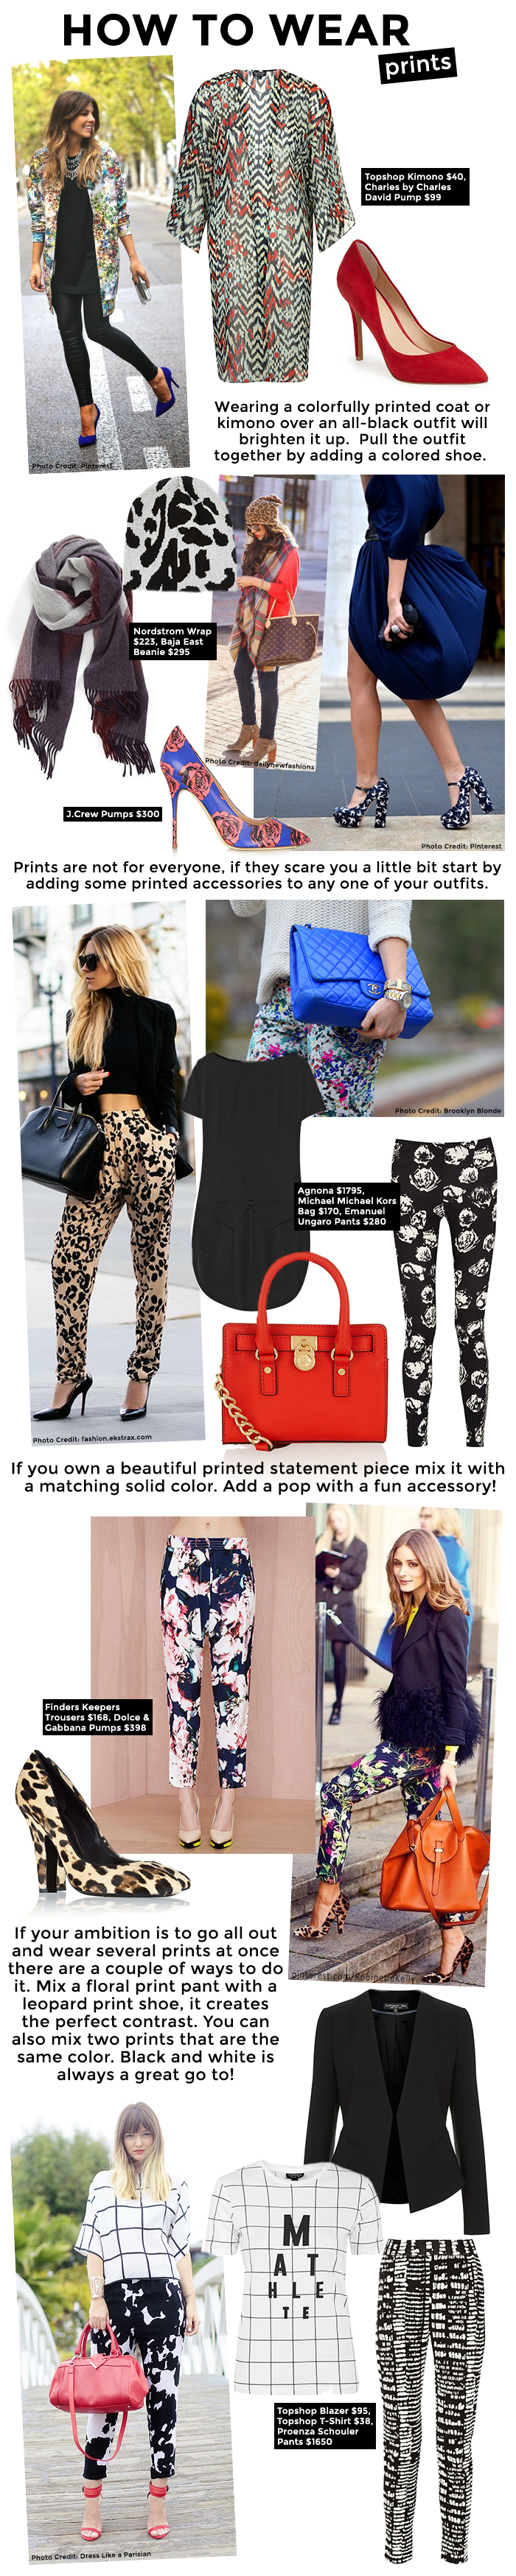 How-to-Wear-Prints